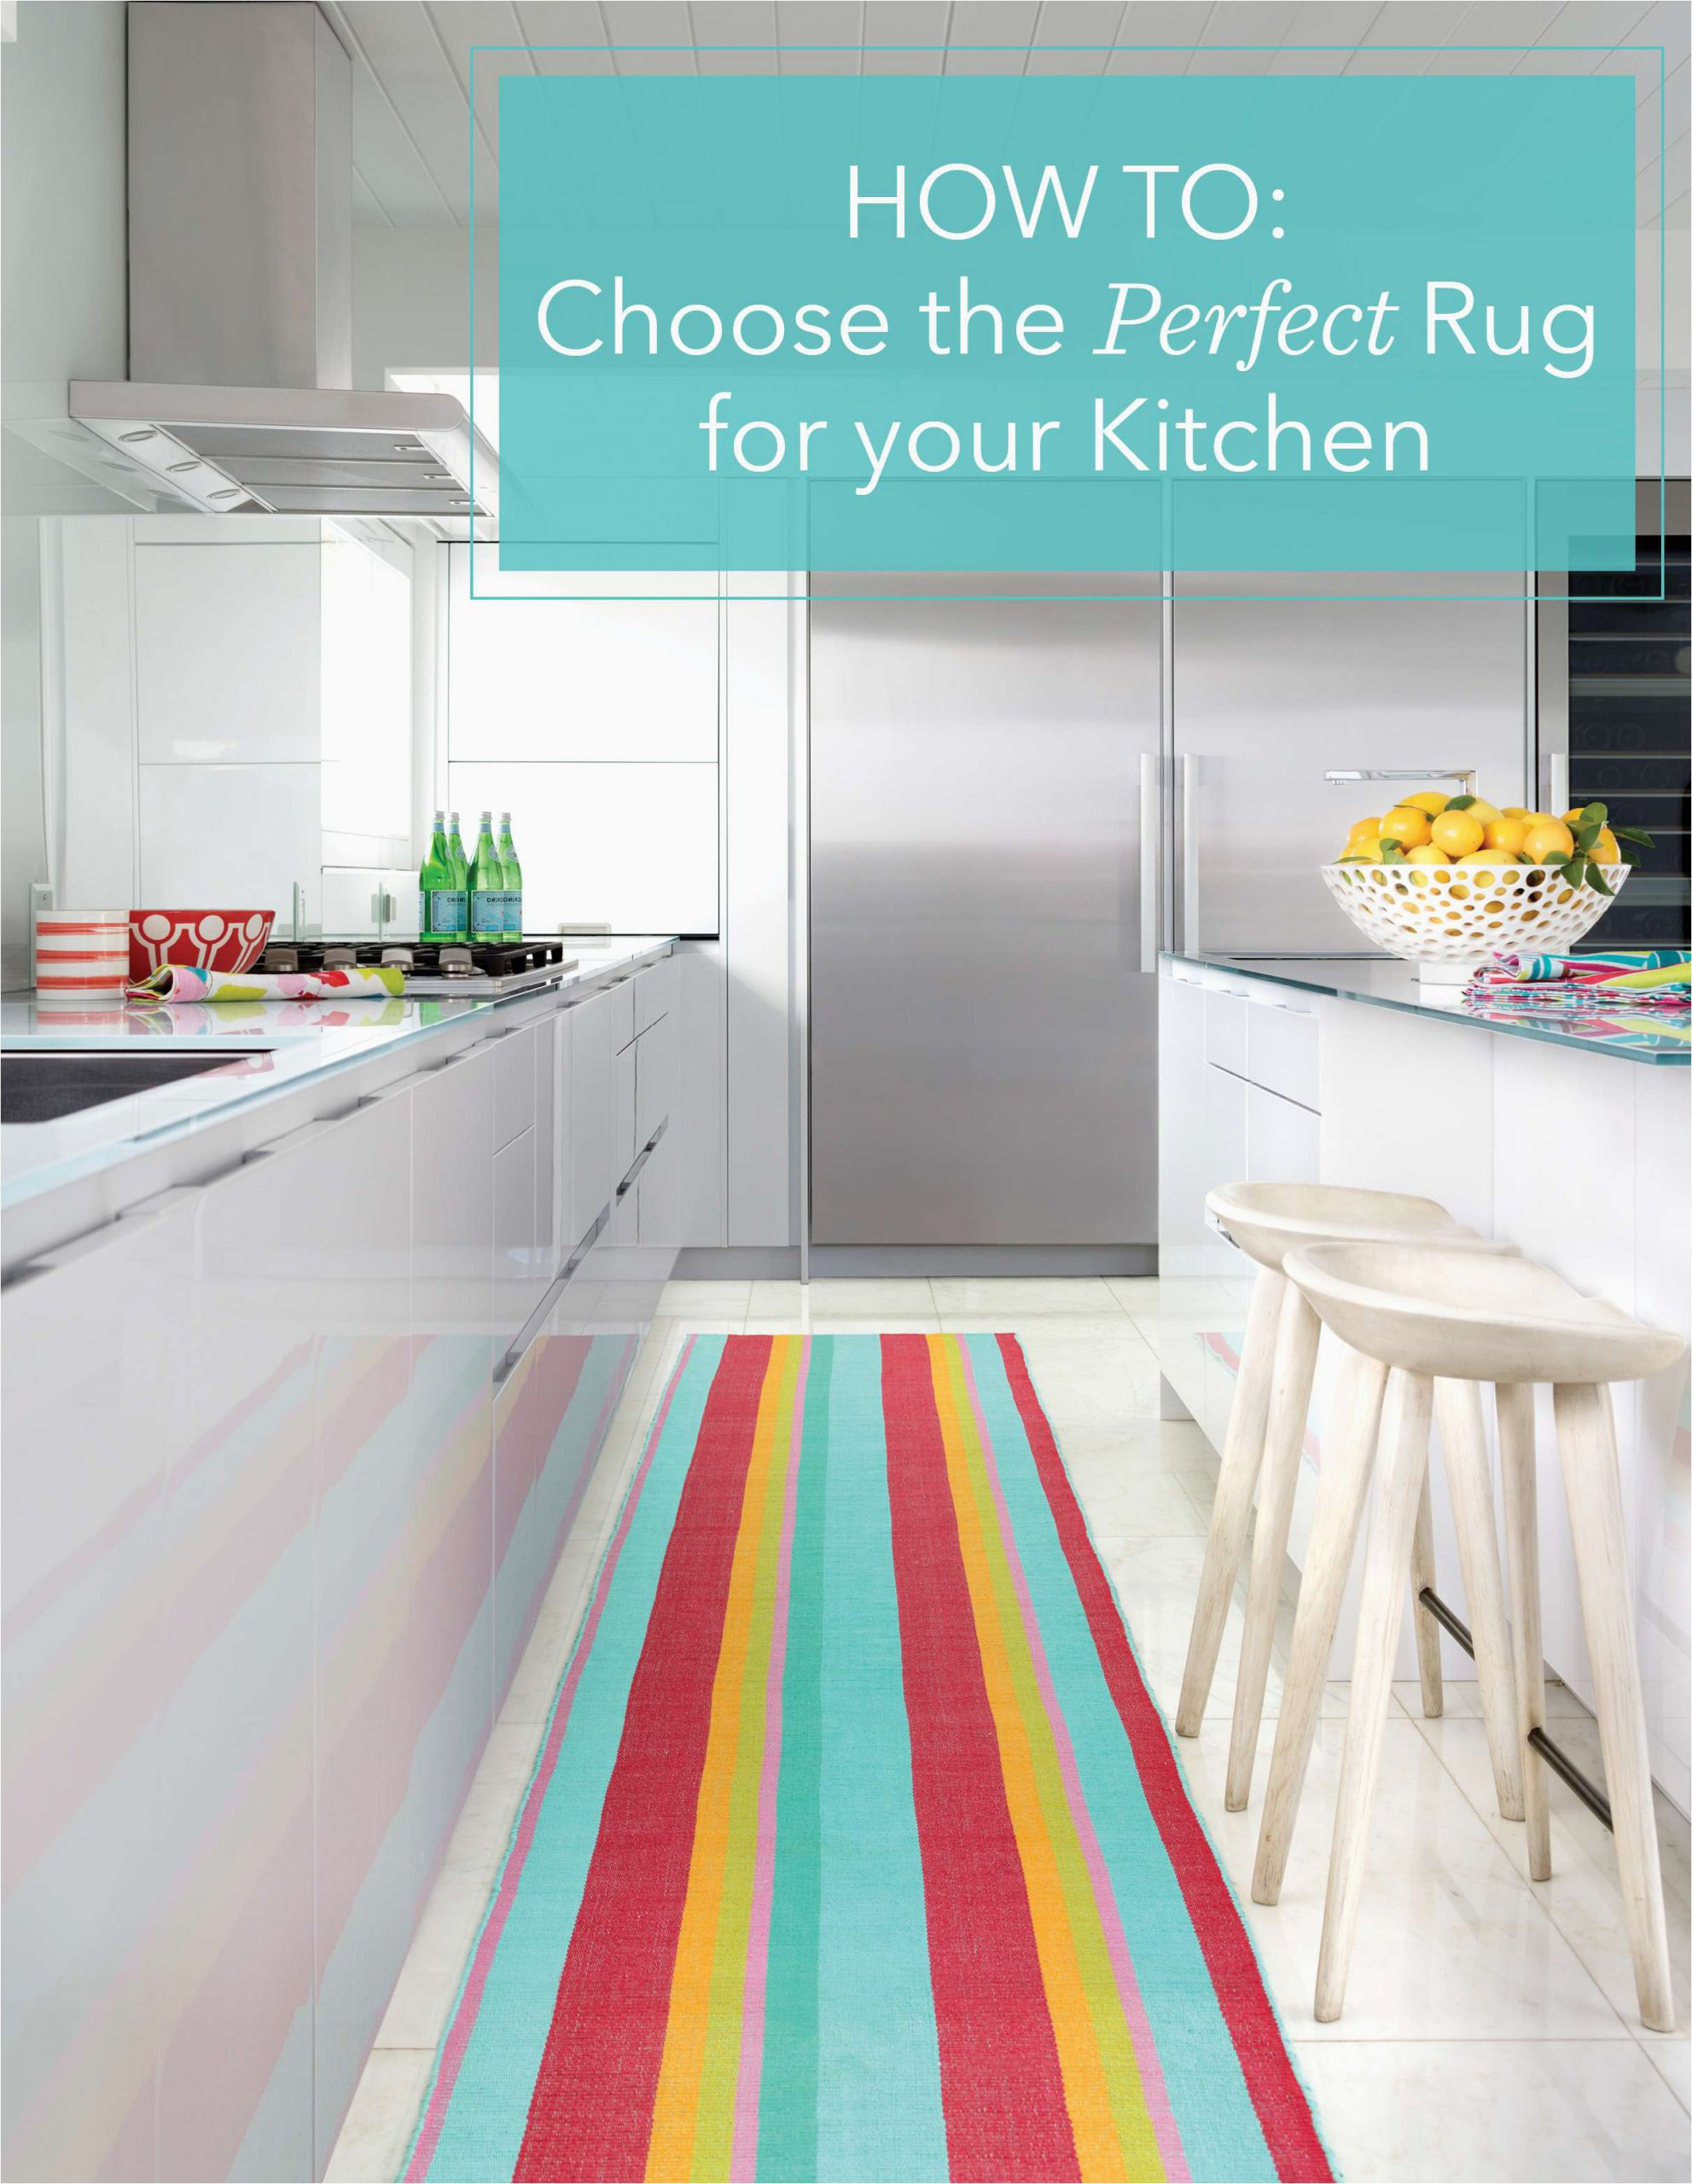 Custom Bath Rug Sizes How to Choose the Perfect Kitchen Rug